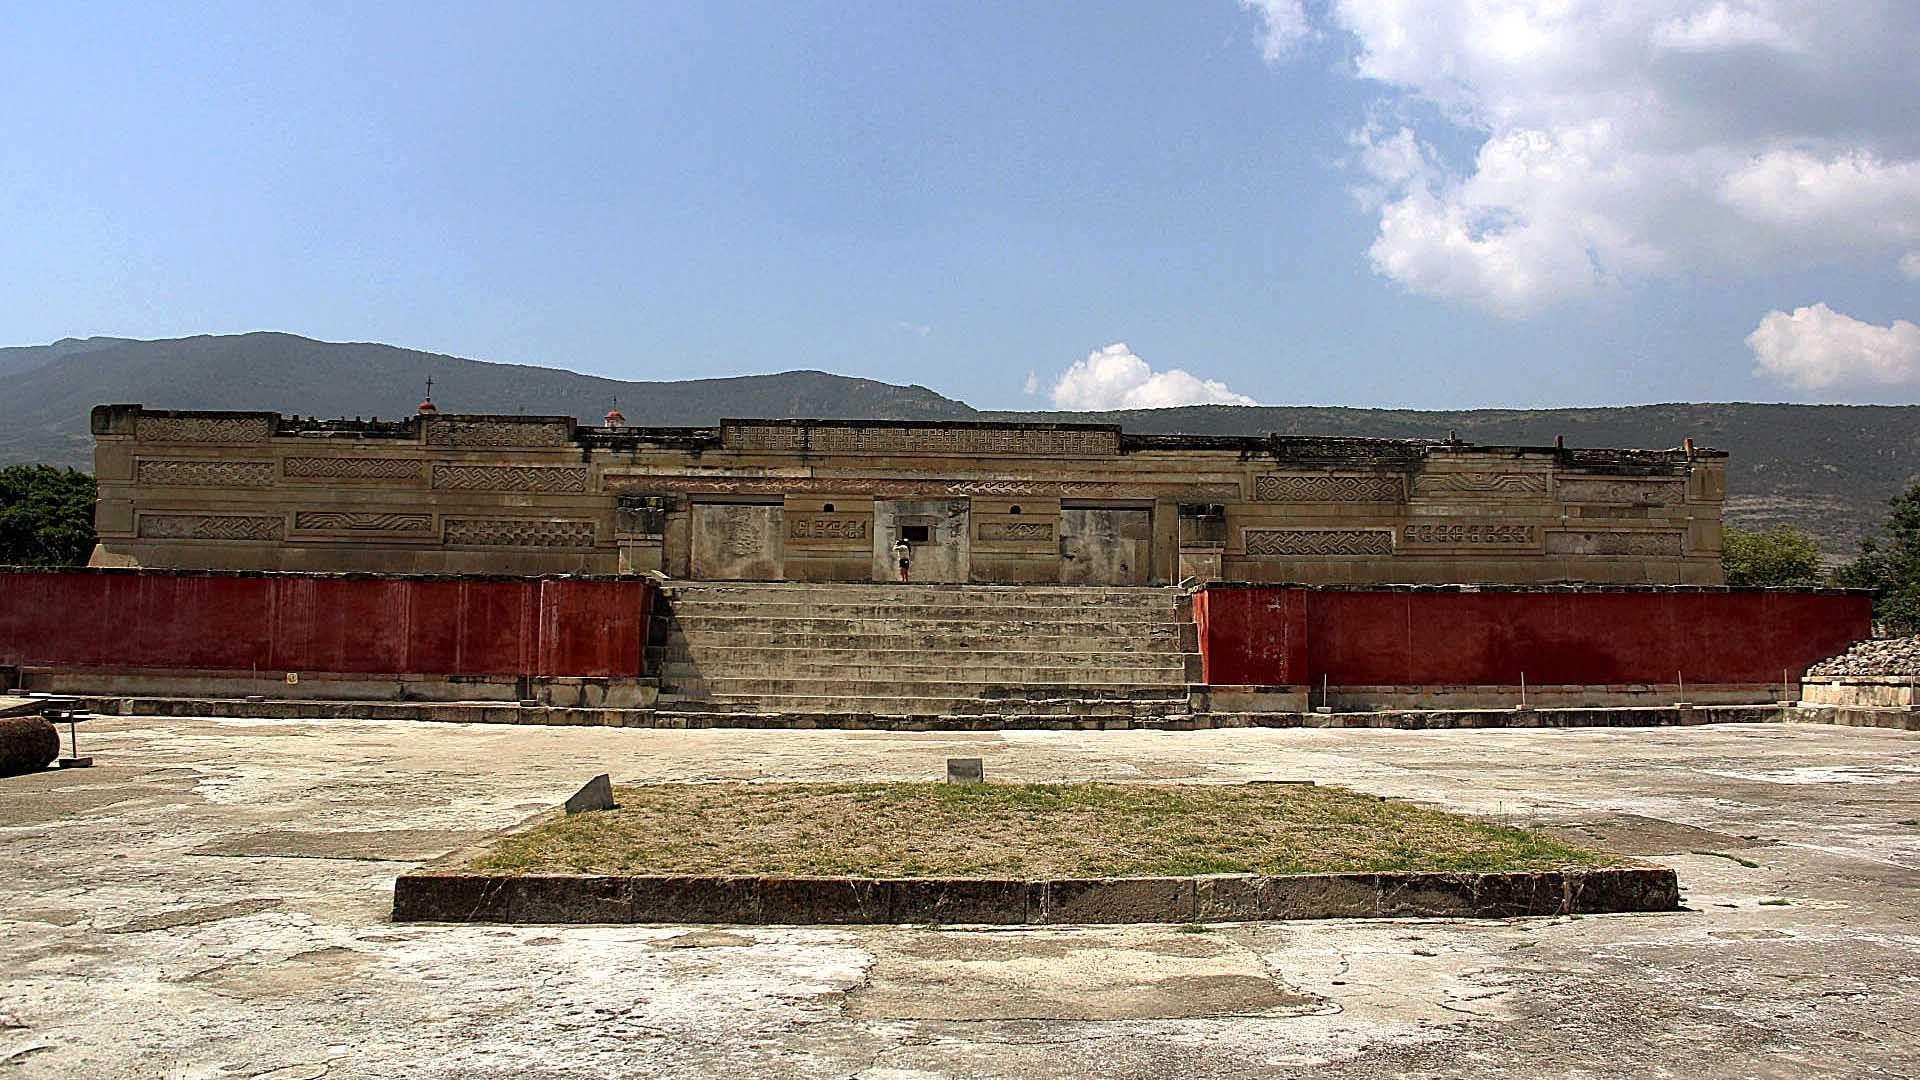 These areas were occupied by the rulers of the site. After the decline of Monte Alban, several citie... - #after #areas #decline #monte #occupied #rulers #these - #Oaxaca